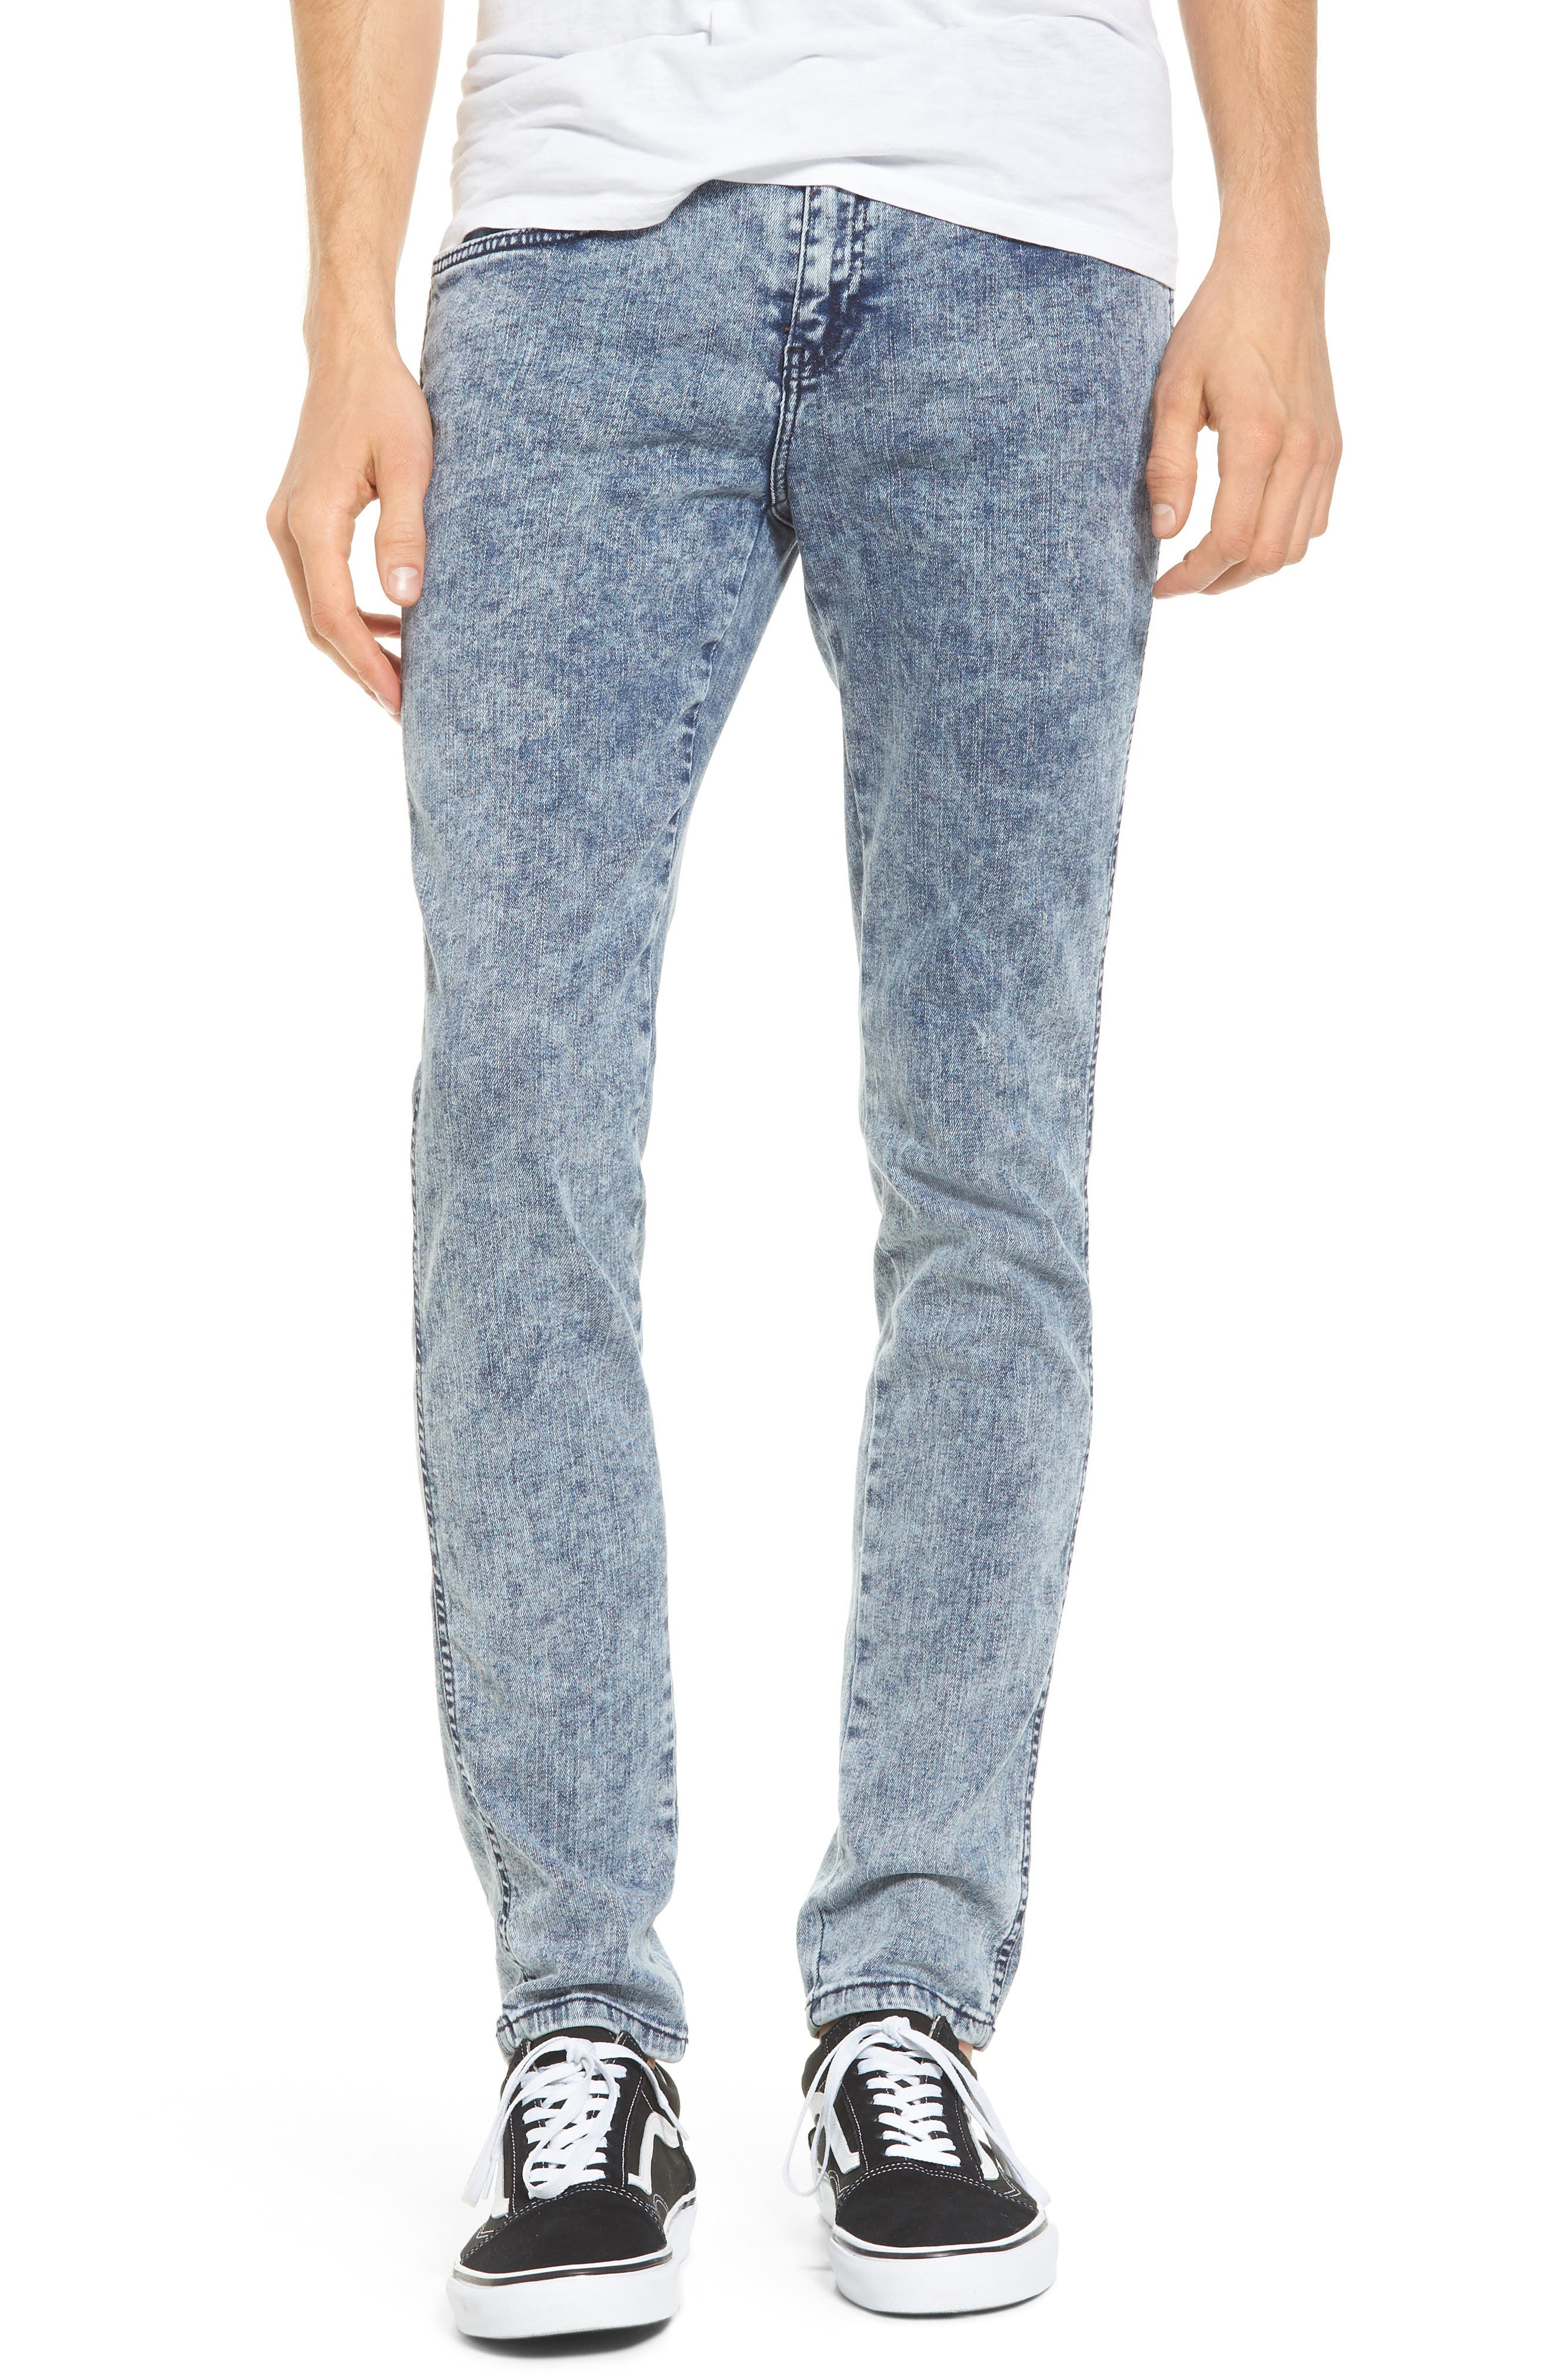 Snap Skinny Fit Jeans,                             Main thumbnail 1, color,                             400